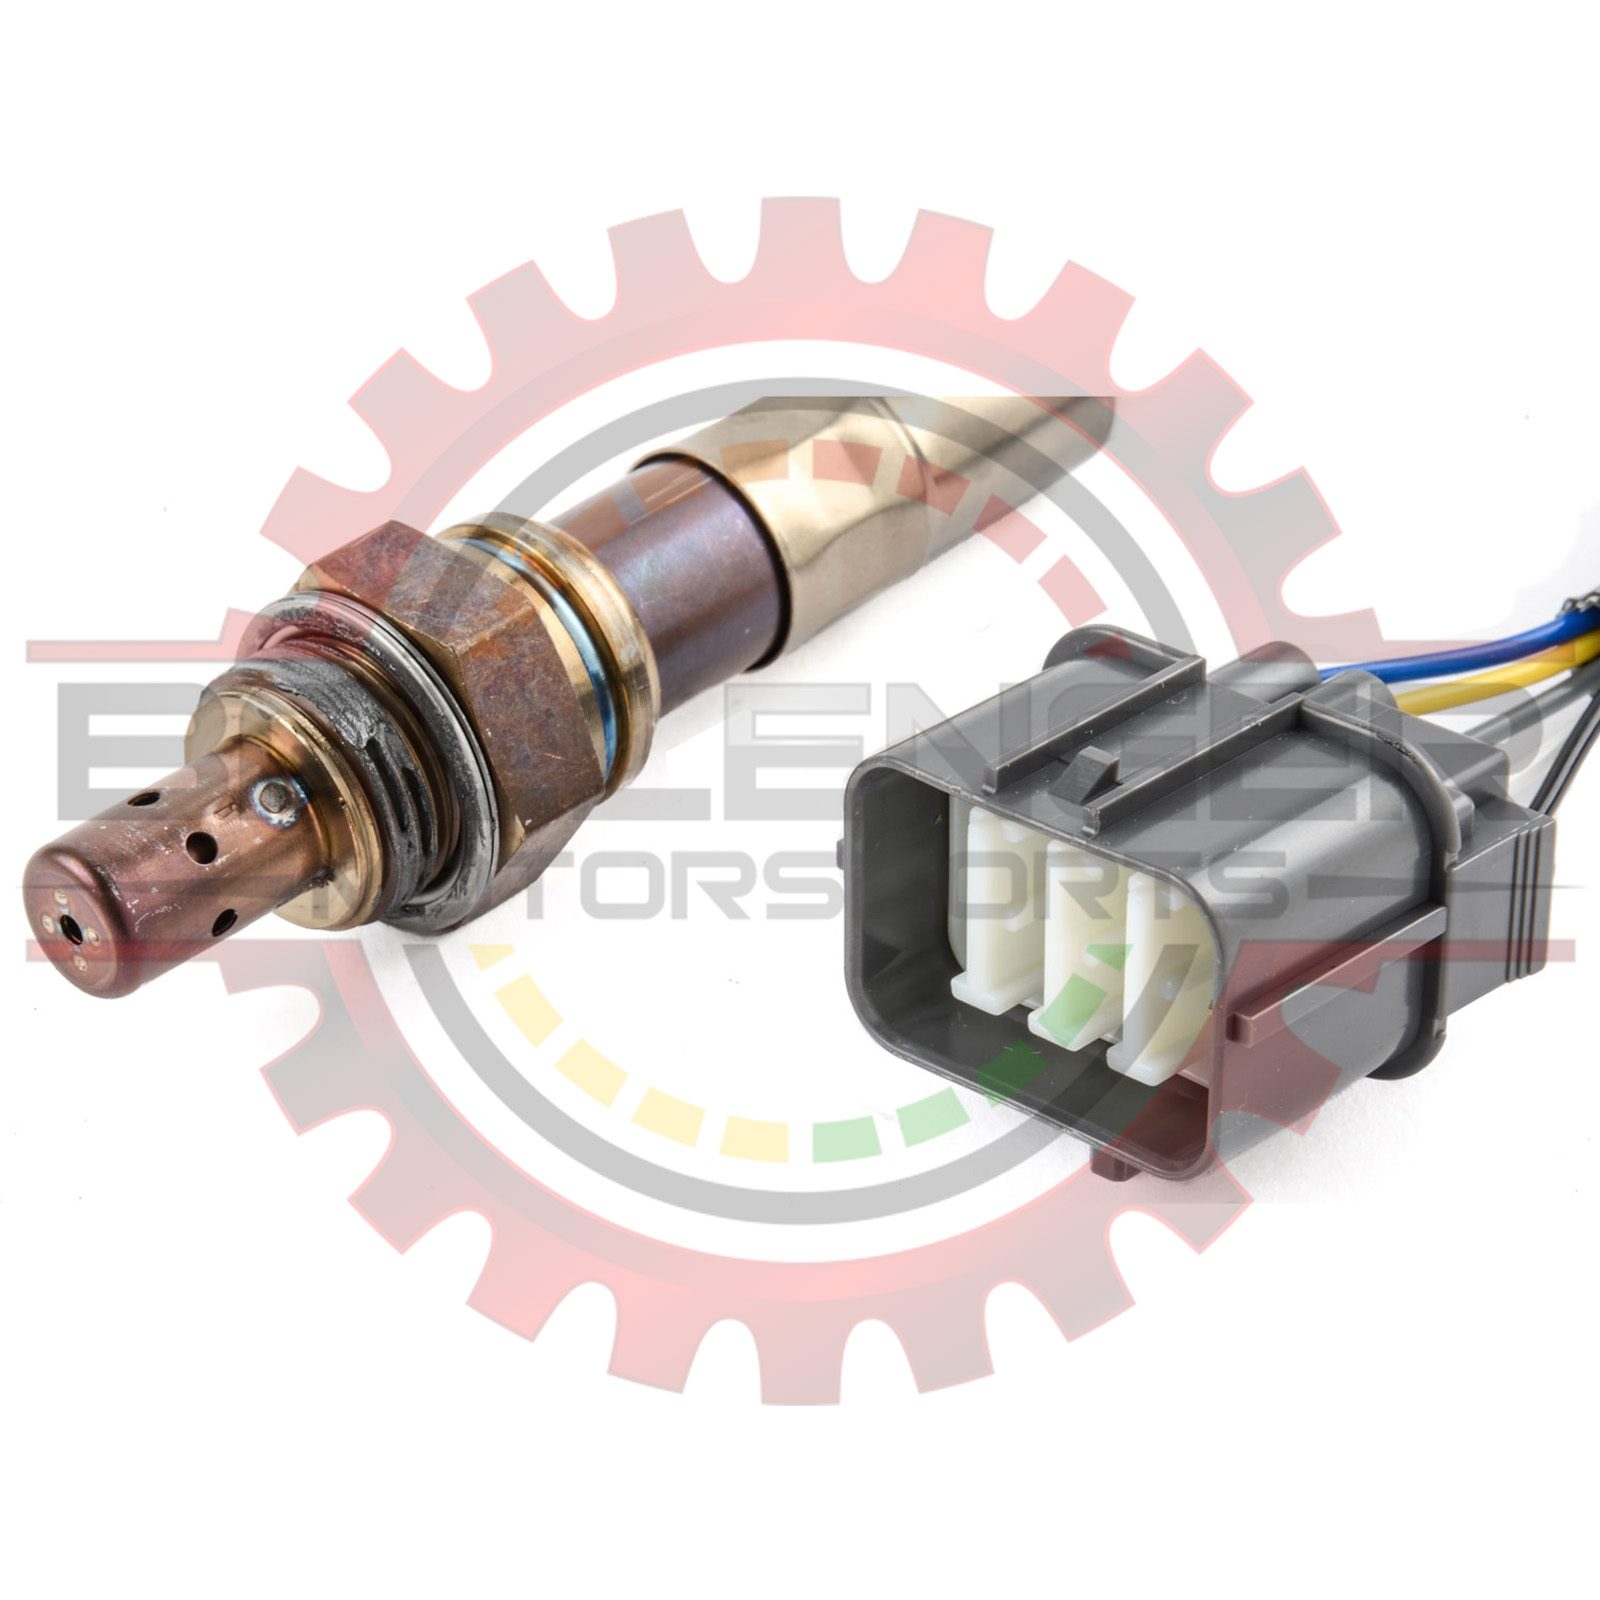 NGK / NTK Wideband O2 Sensor ( UEGO ) for NGK Powerdex AFX, Ballenger  Motorsports AFR500, OEM replacement & other wideband systems